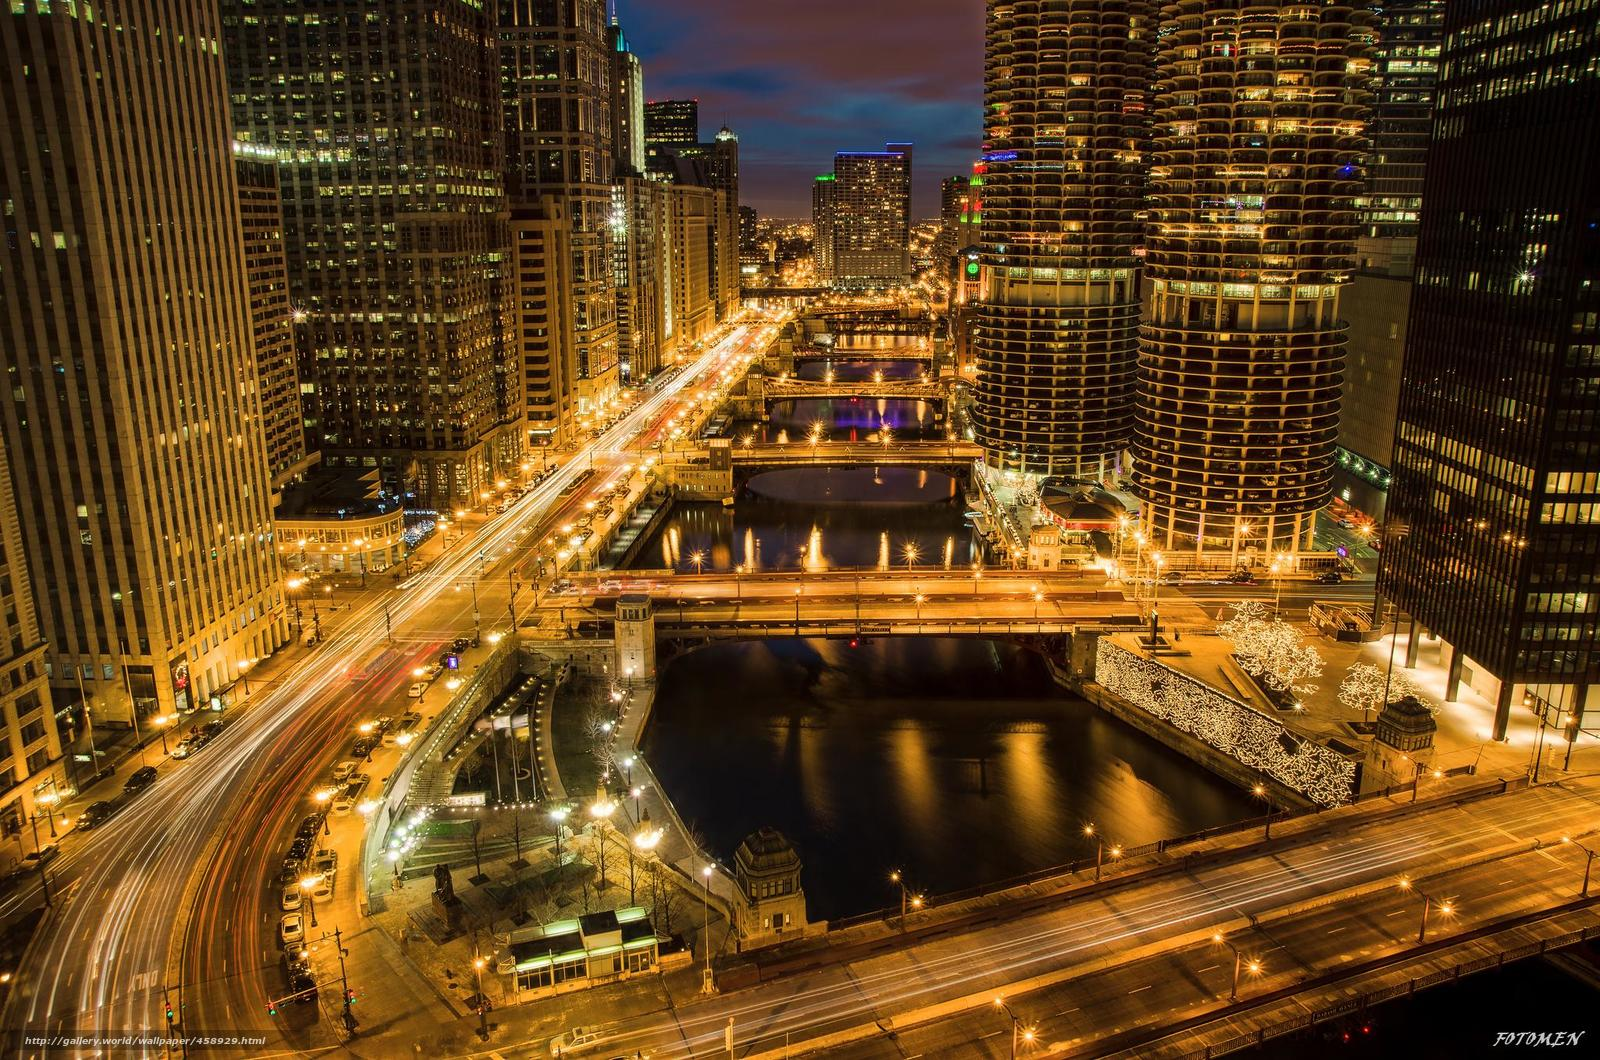 Download wallpaper Chicago Chicago USA illinois 1600x1060